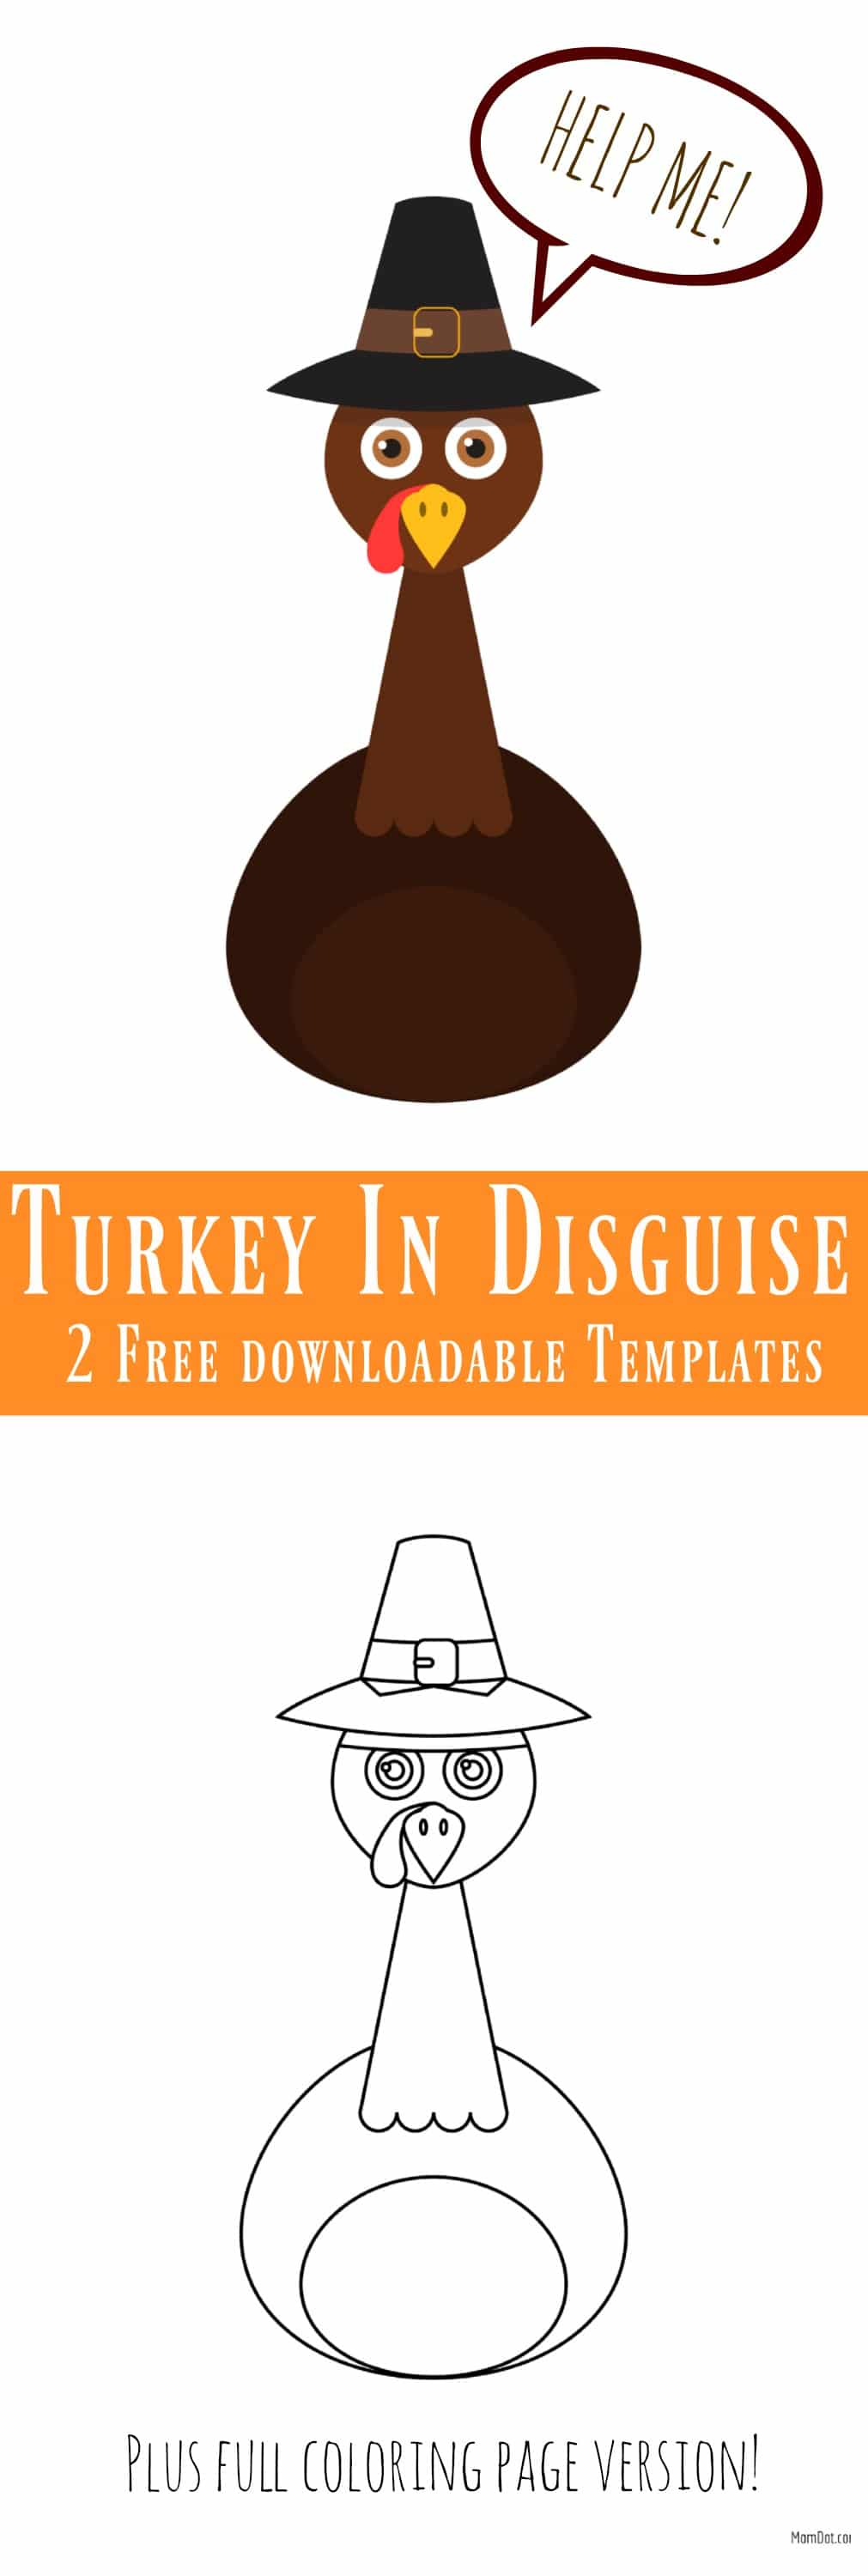 Disguise the Turkey Template , Free Downloadable Templates in color and in coloring sheet, HIDE THE TURKEY and save him from thanksgiving dinner